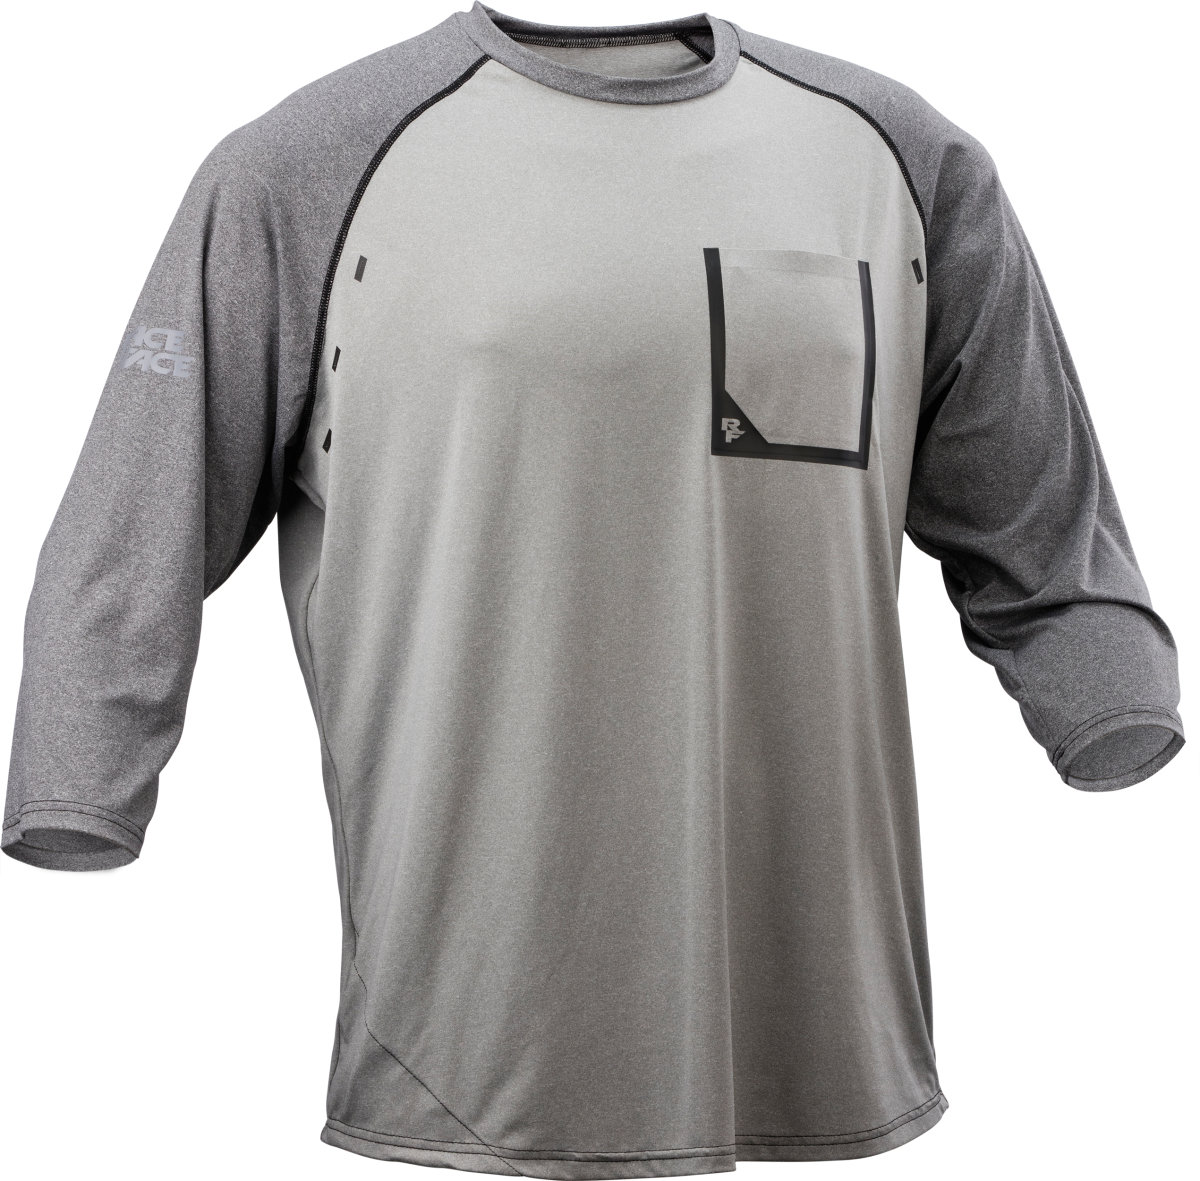 Футболка Race Face Stage 3/4 Sleeve Jersey charcoal MA941013